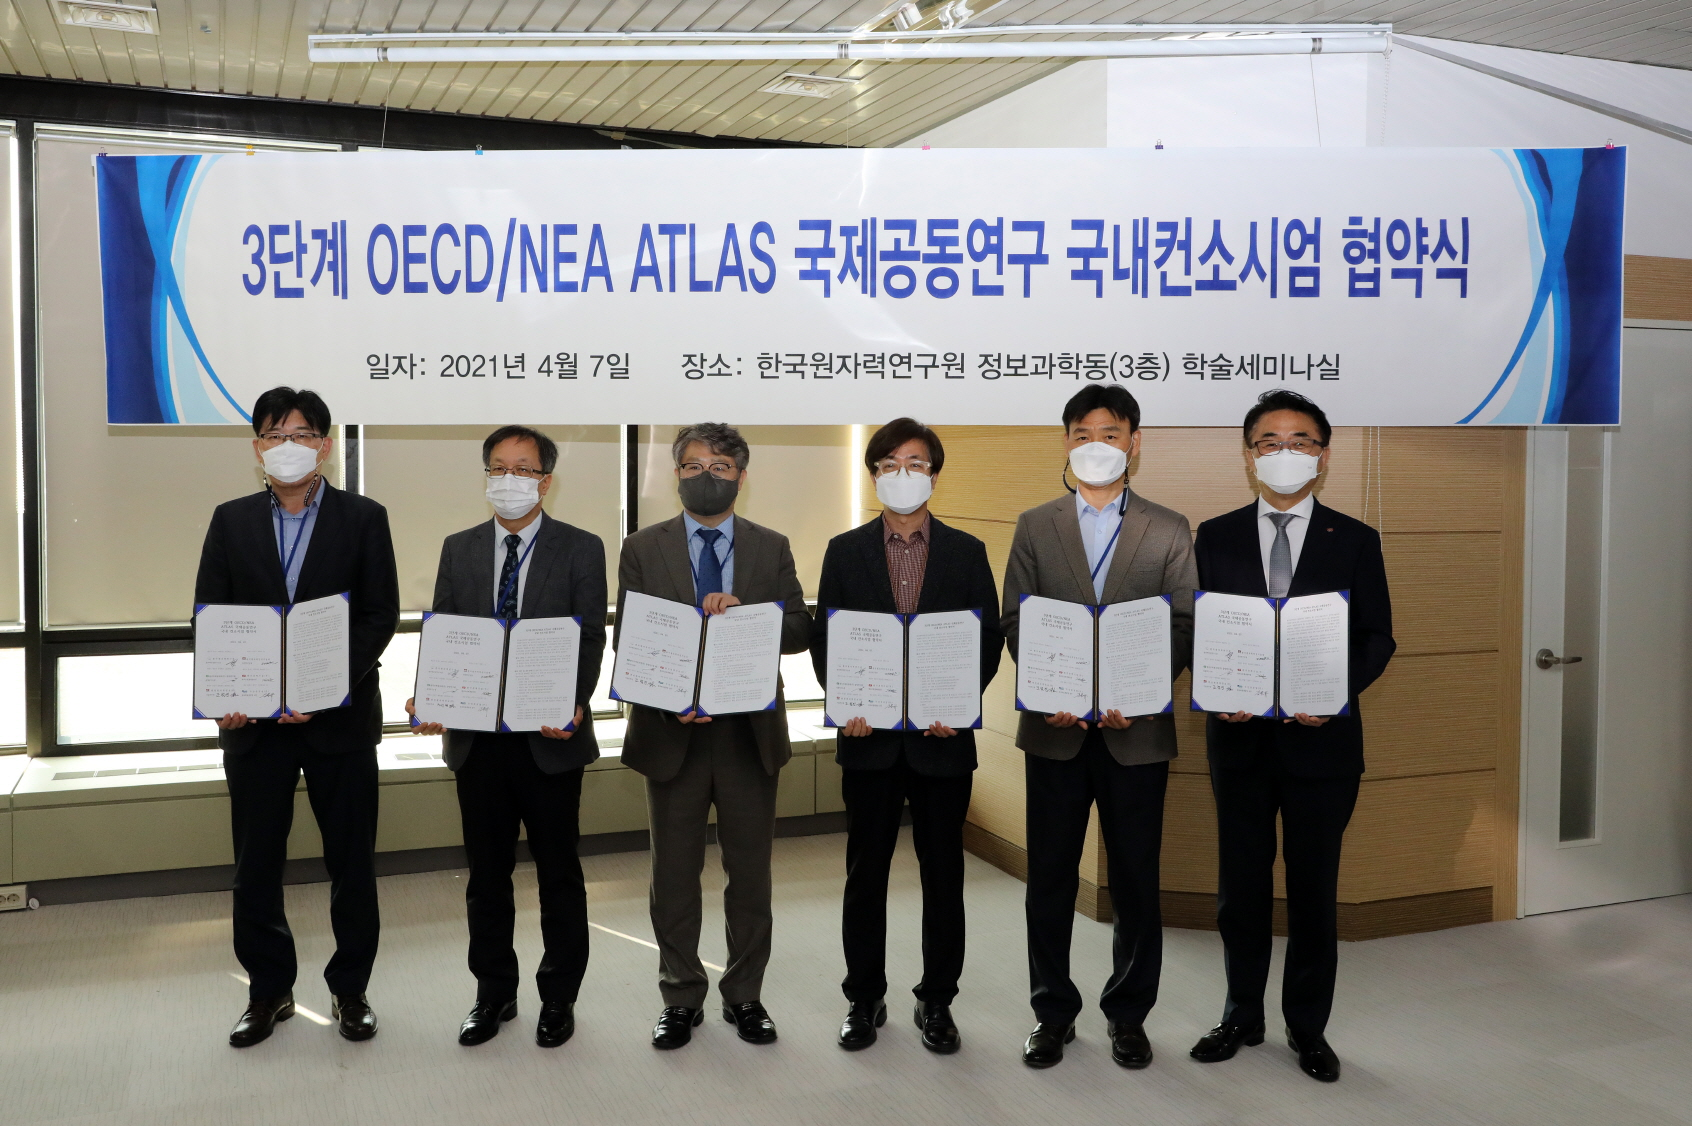 Team Korea to Lead International Research on Nuclear Safety